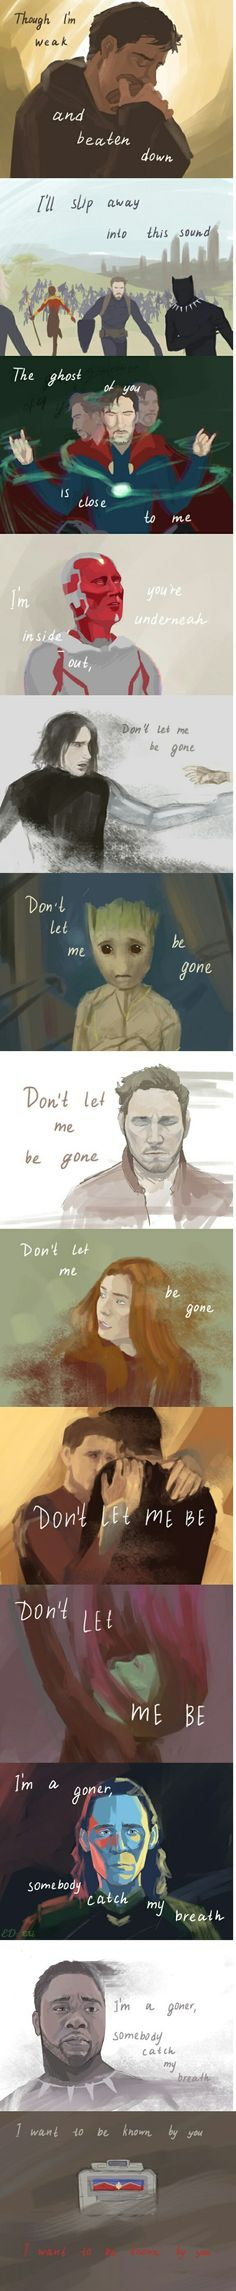 Don't leave me be gone || Avengers Infinity War || Cr: the closest star